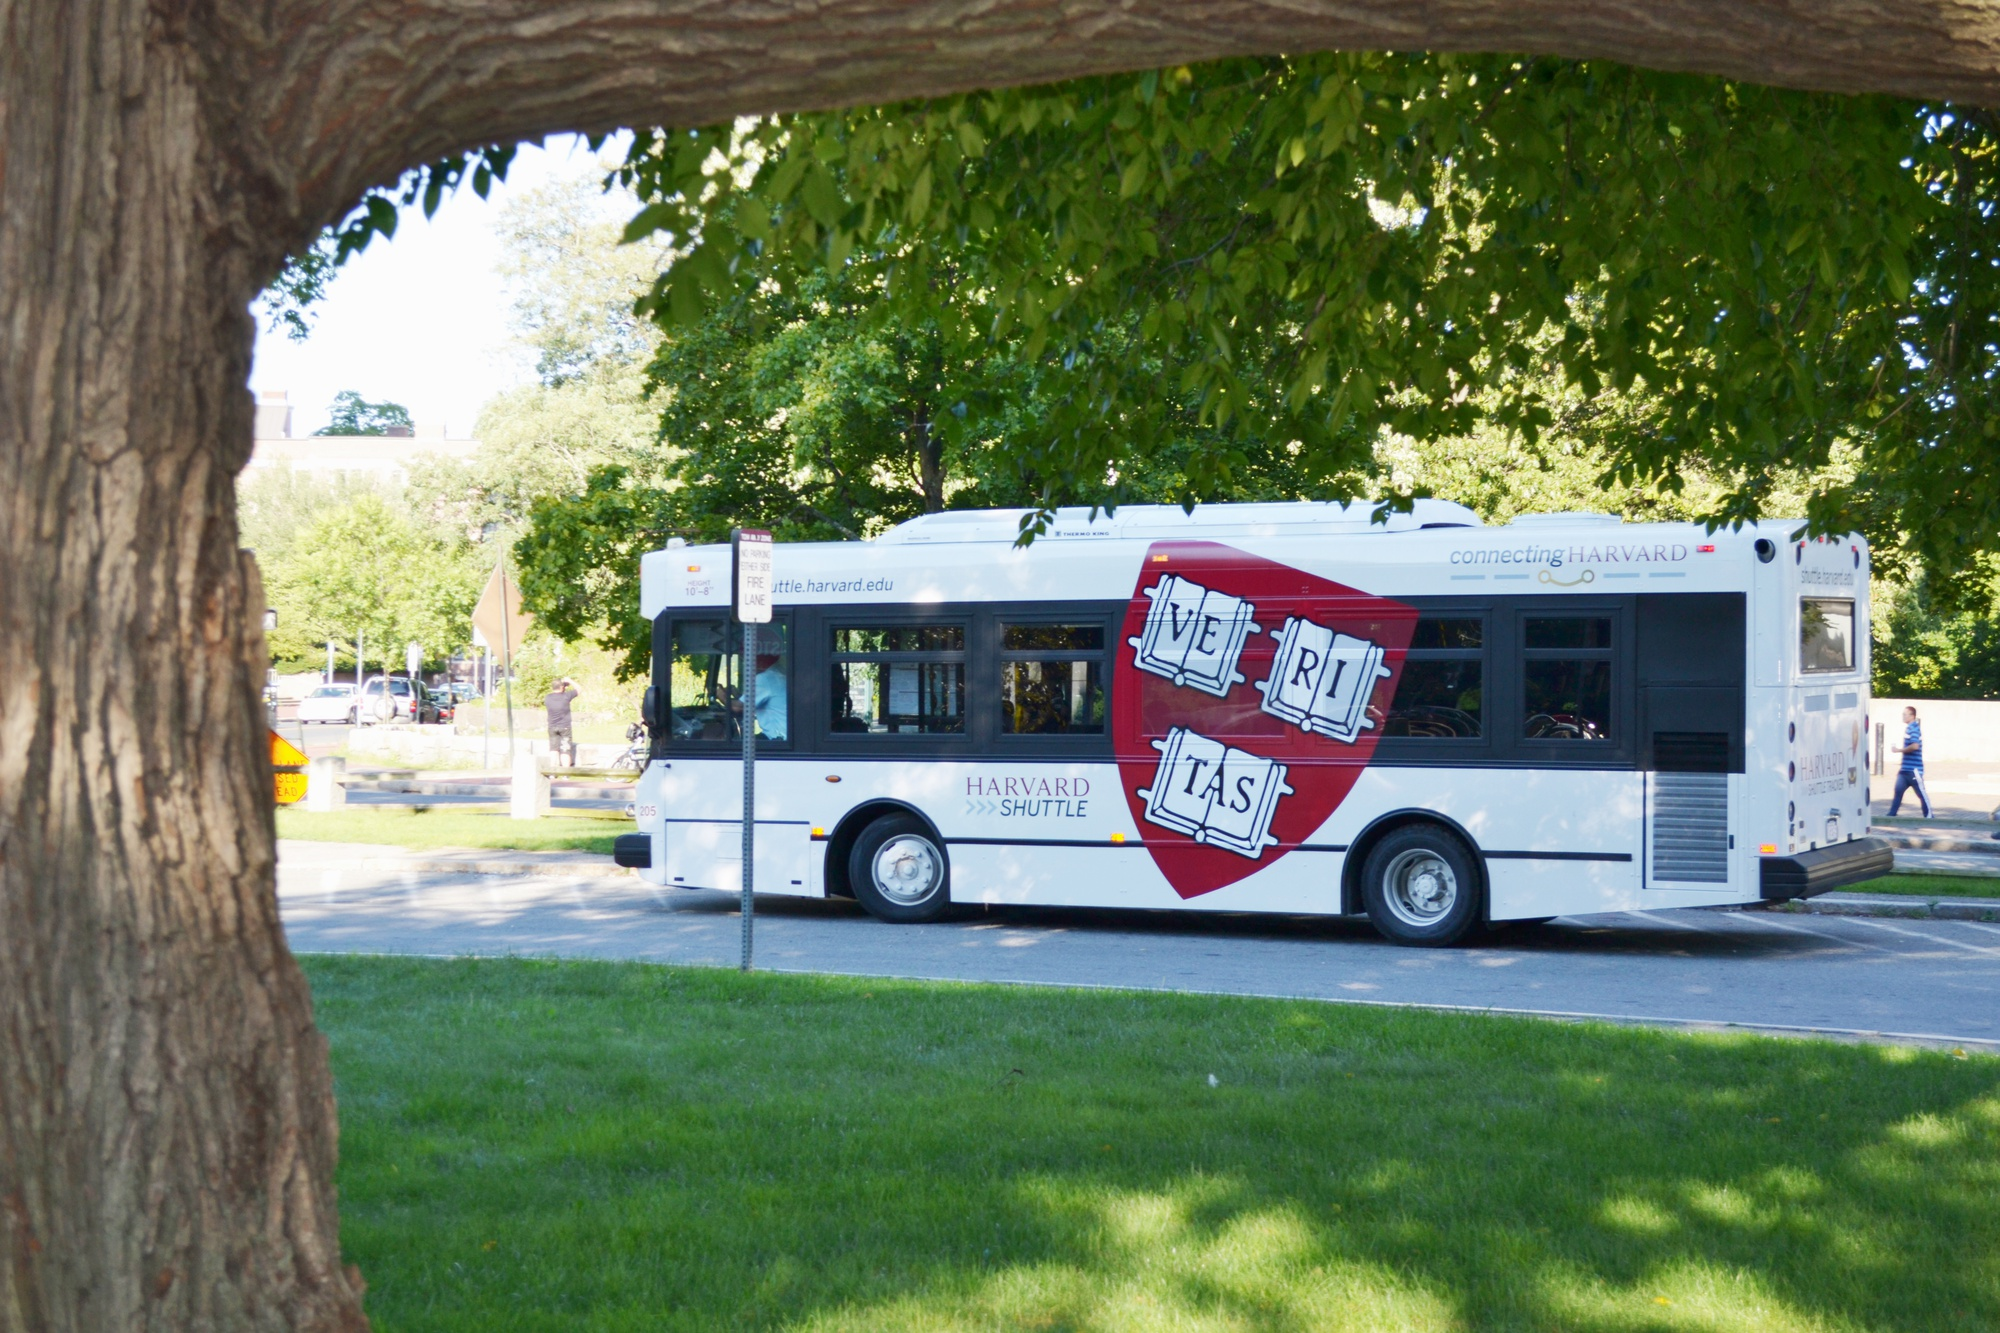 The University shuttle serves as a new resource to Allston residents as the new school year gets underway.